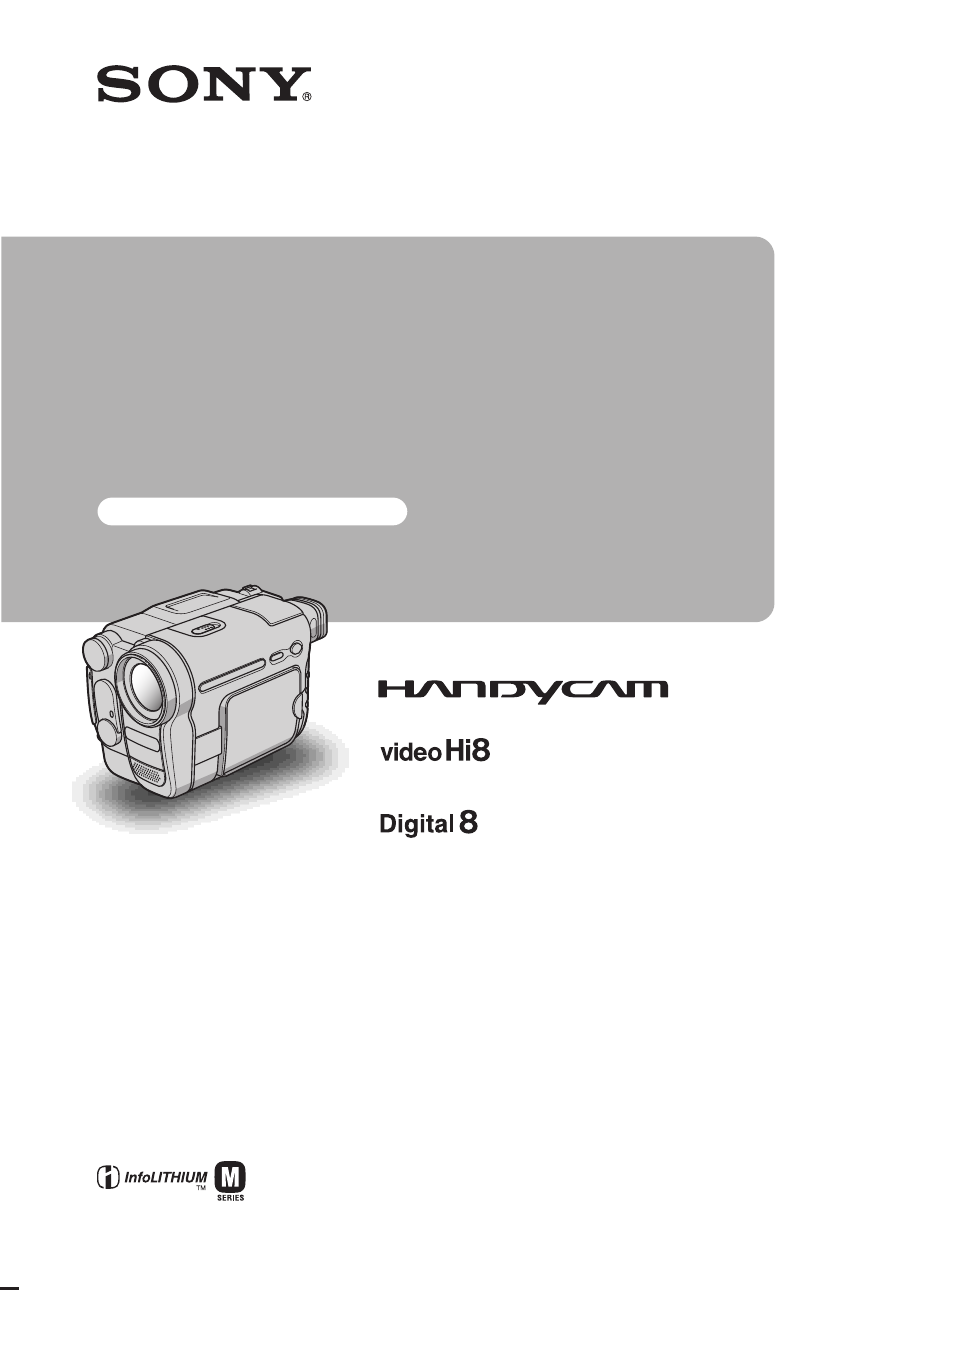 sony ccd trv328 user manual 100 pages also for dcr trv260 ccd rh manualsdir com sony ccd-trv328 manual Sony Super HAD CCD Cameras